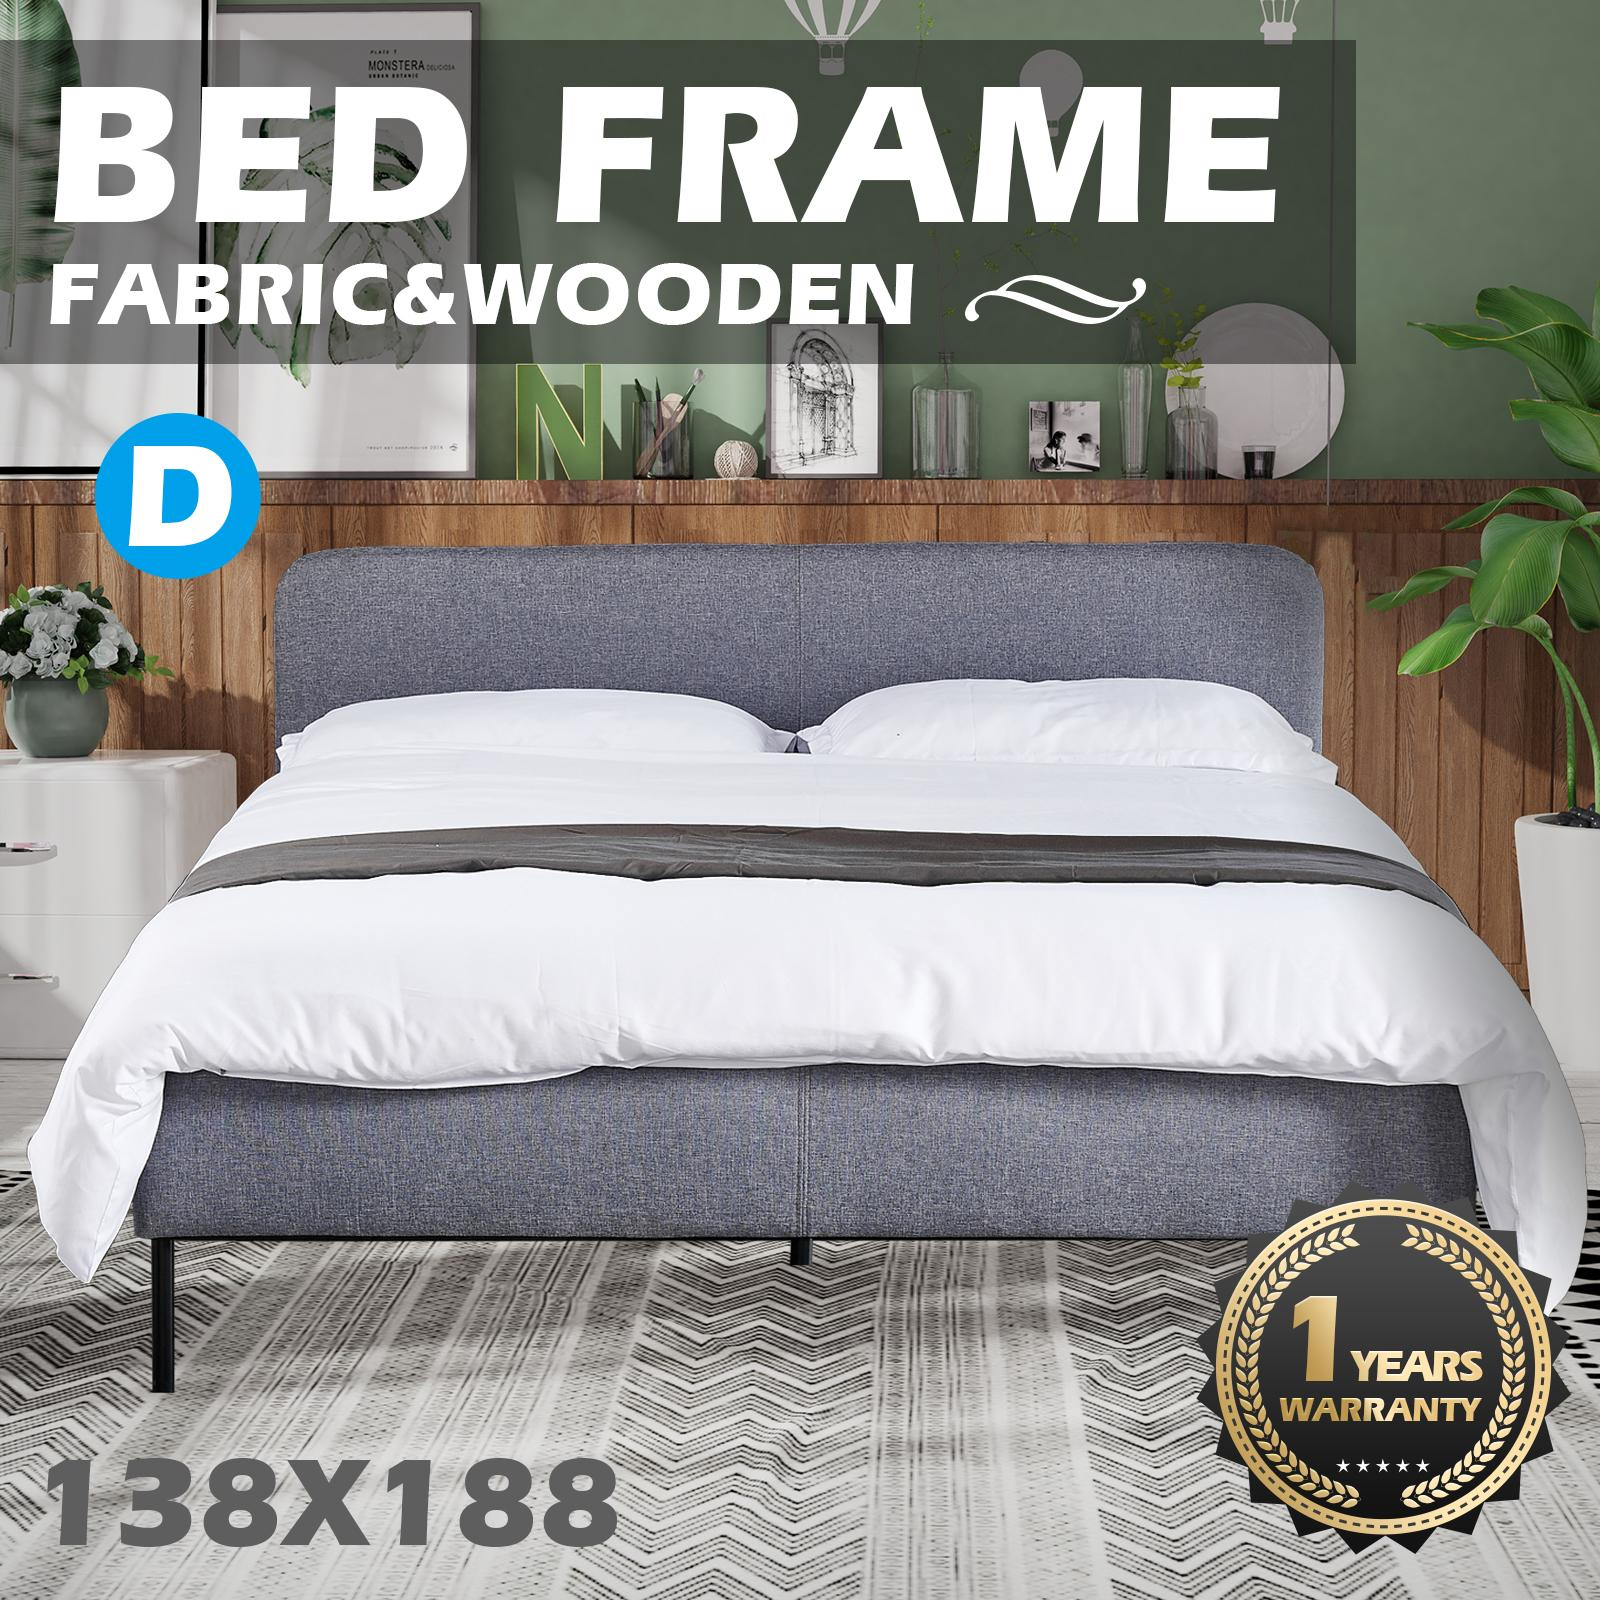 Picture of: Advwin Upholstered Platform Bed Frame Double Size Bed Frame Headboard Mattress Foundation For Adults And Children Wood Slat Support Easy Assembly Light Grey Matt Blatt